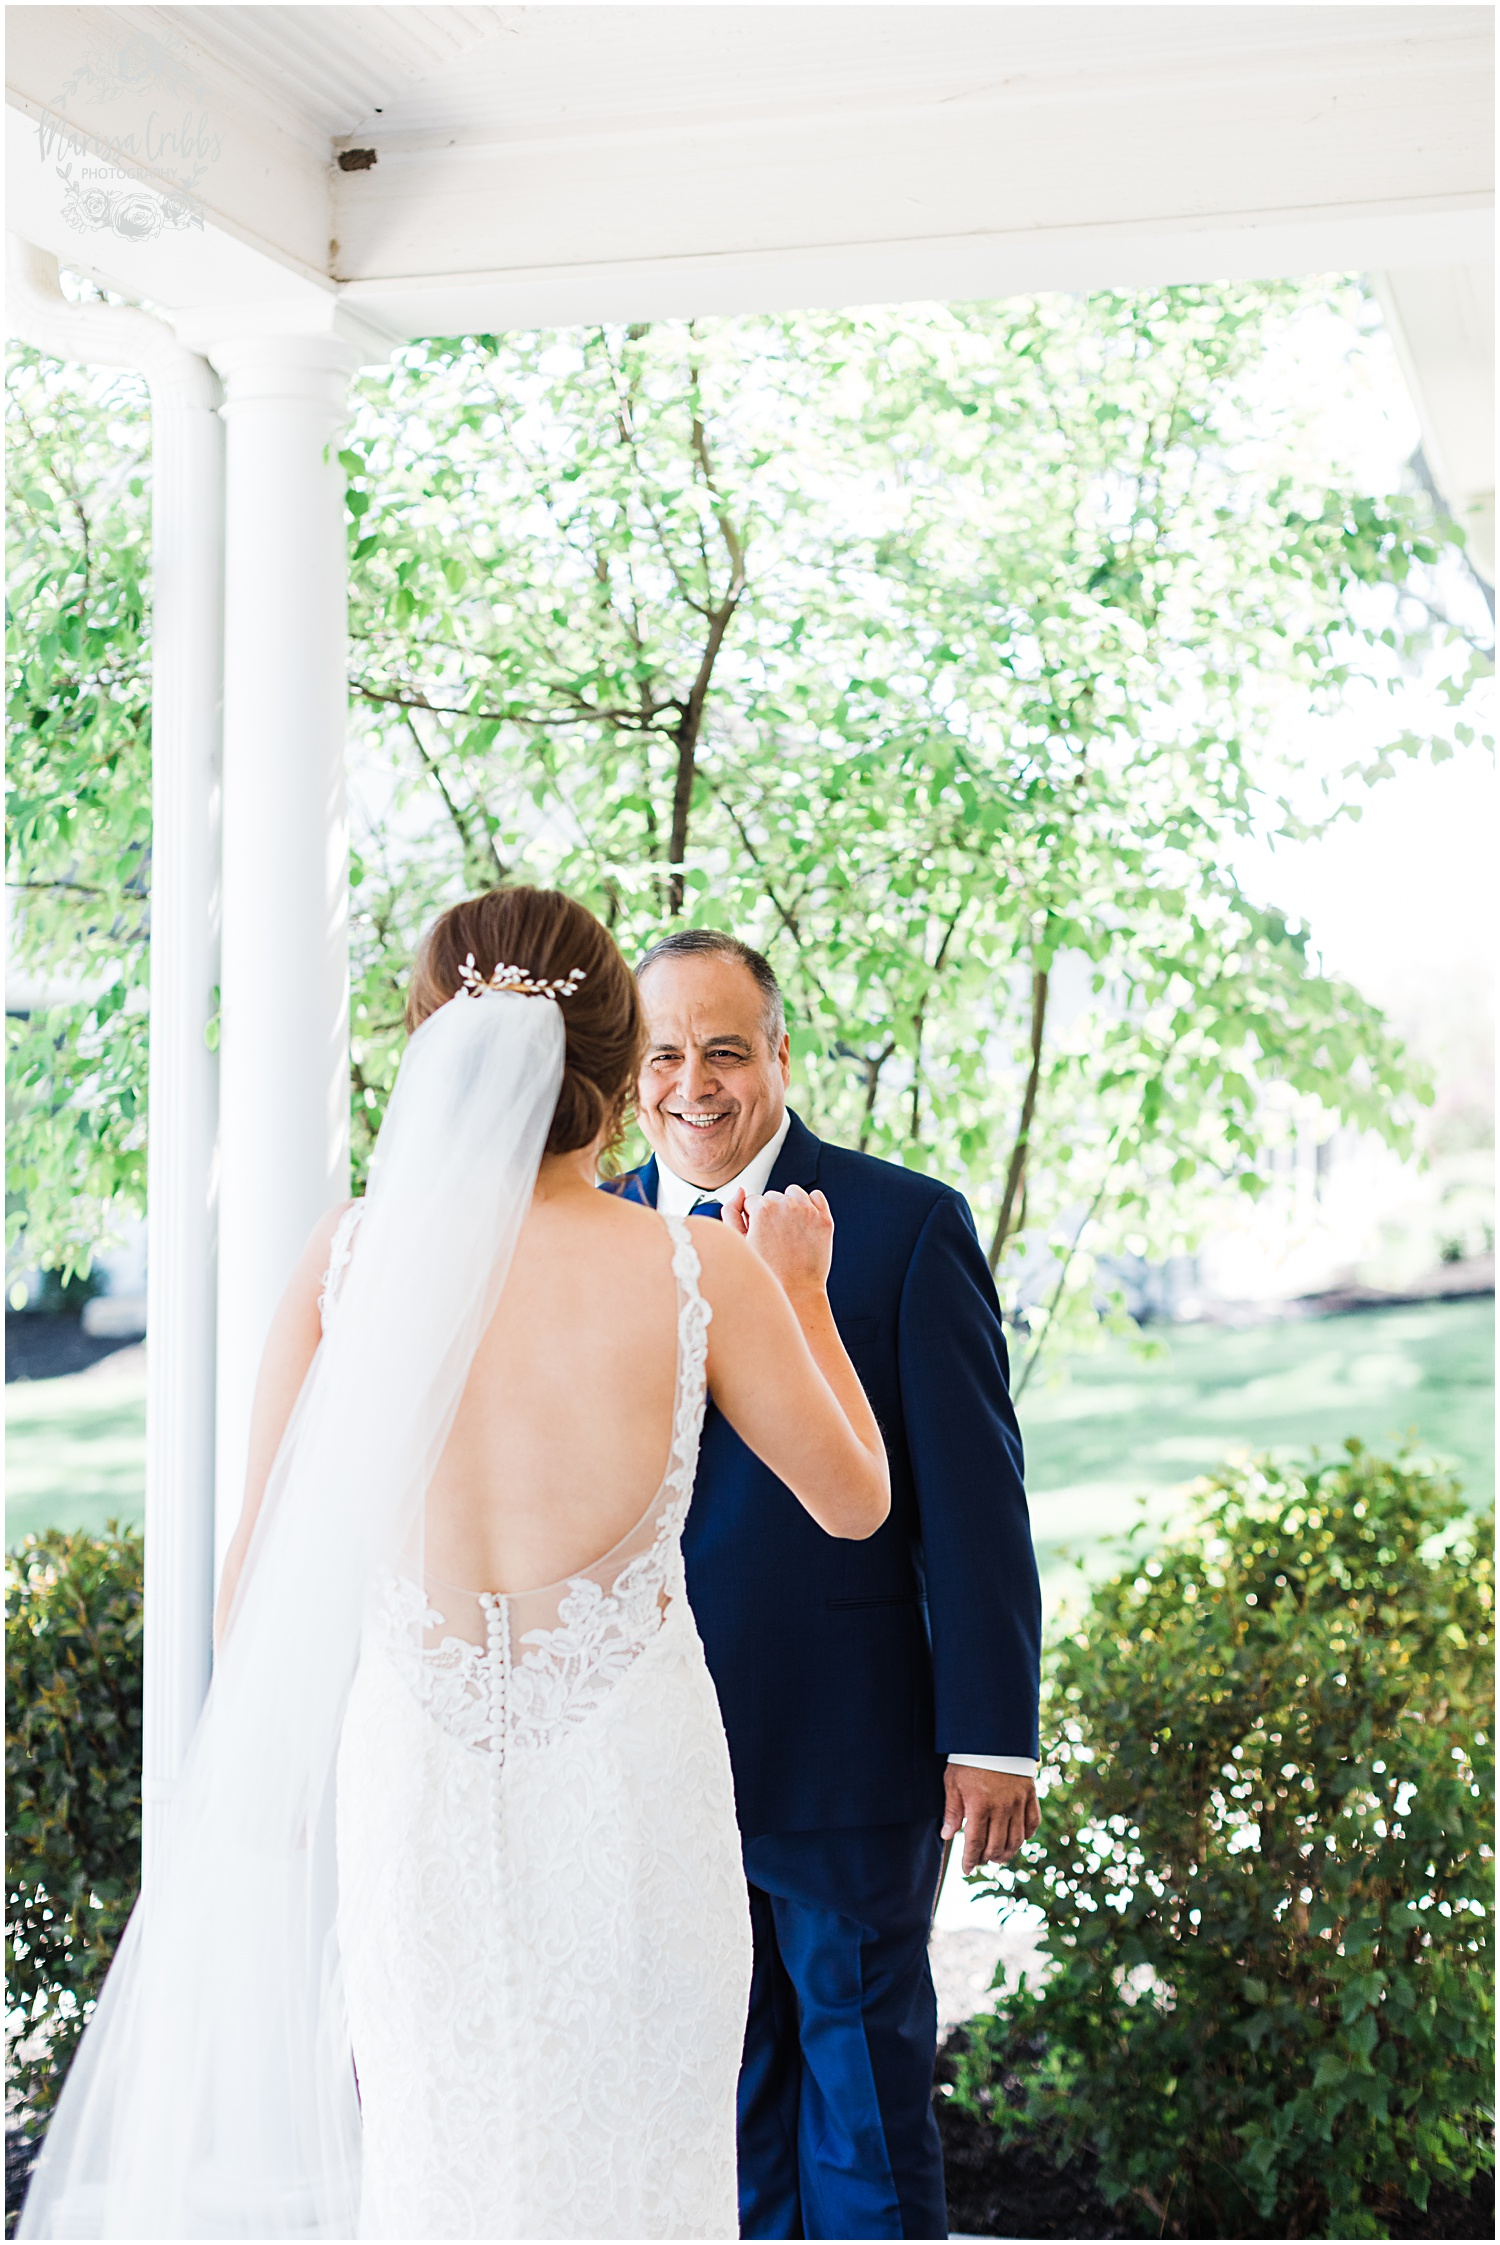 JESSICA & MARK MARRIED SNEAK PEEKS | 1890 EVENT SPACE WEDDING | MARISSA CRIBBS PHOTOGRAPHY_7819.jpg